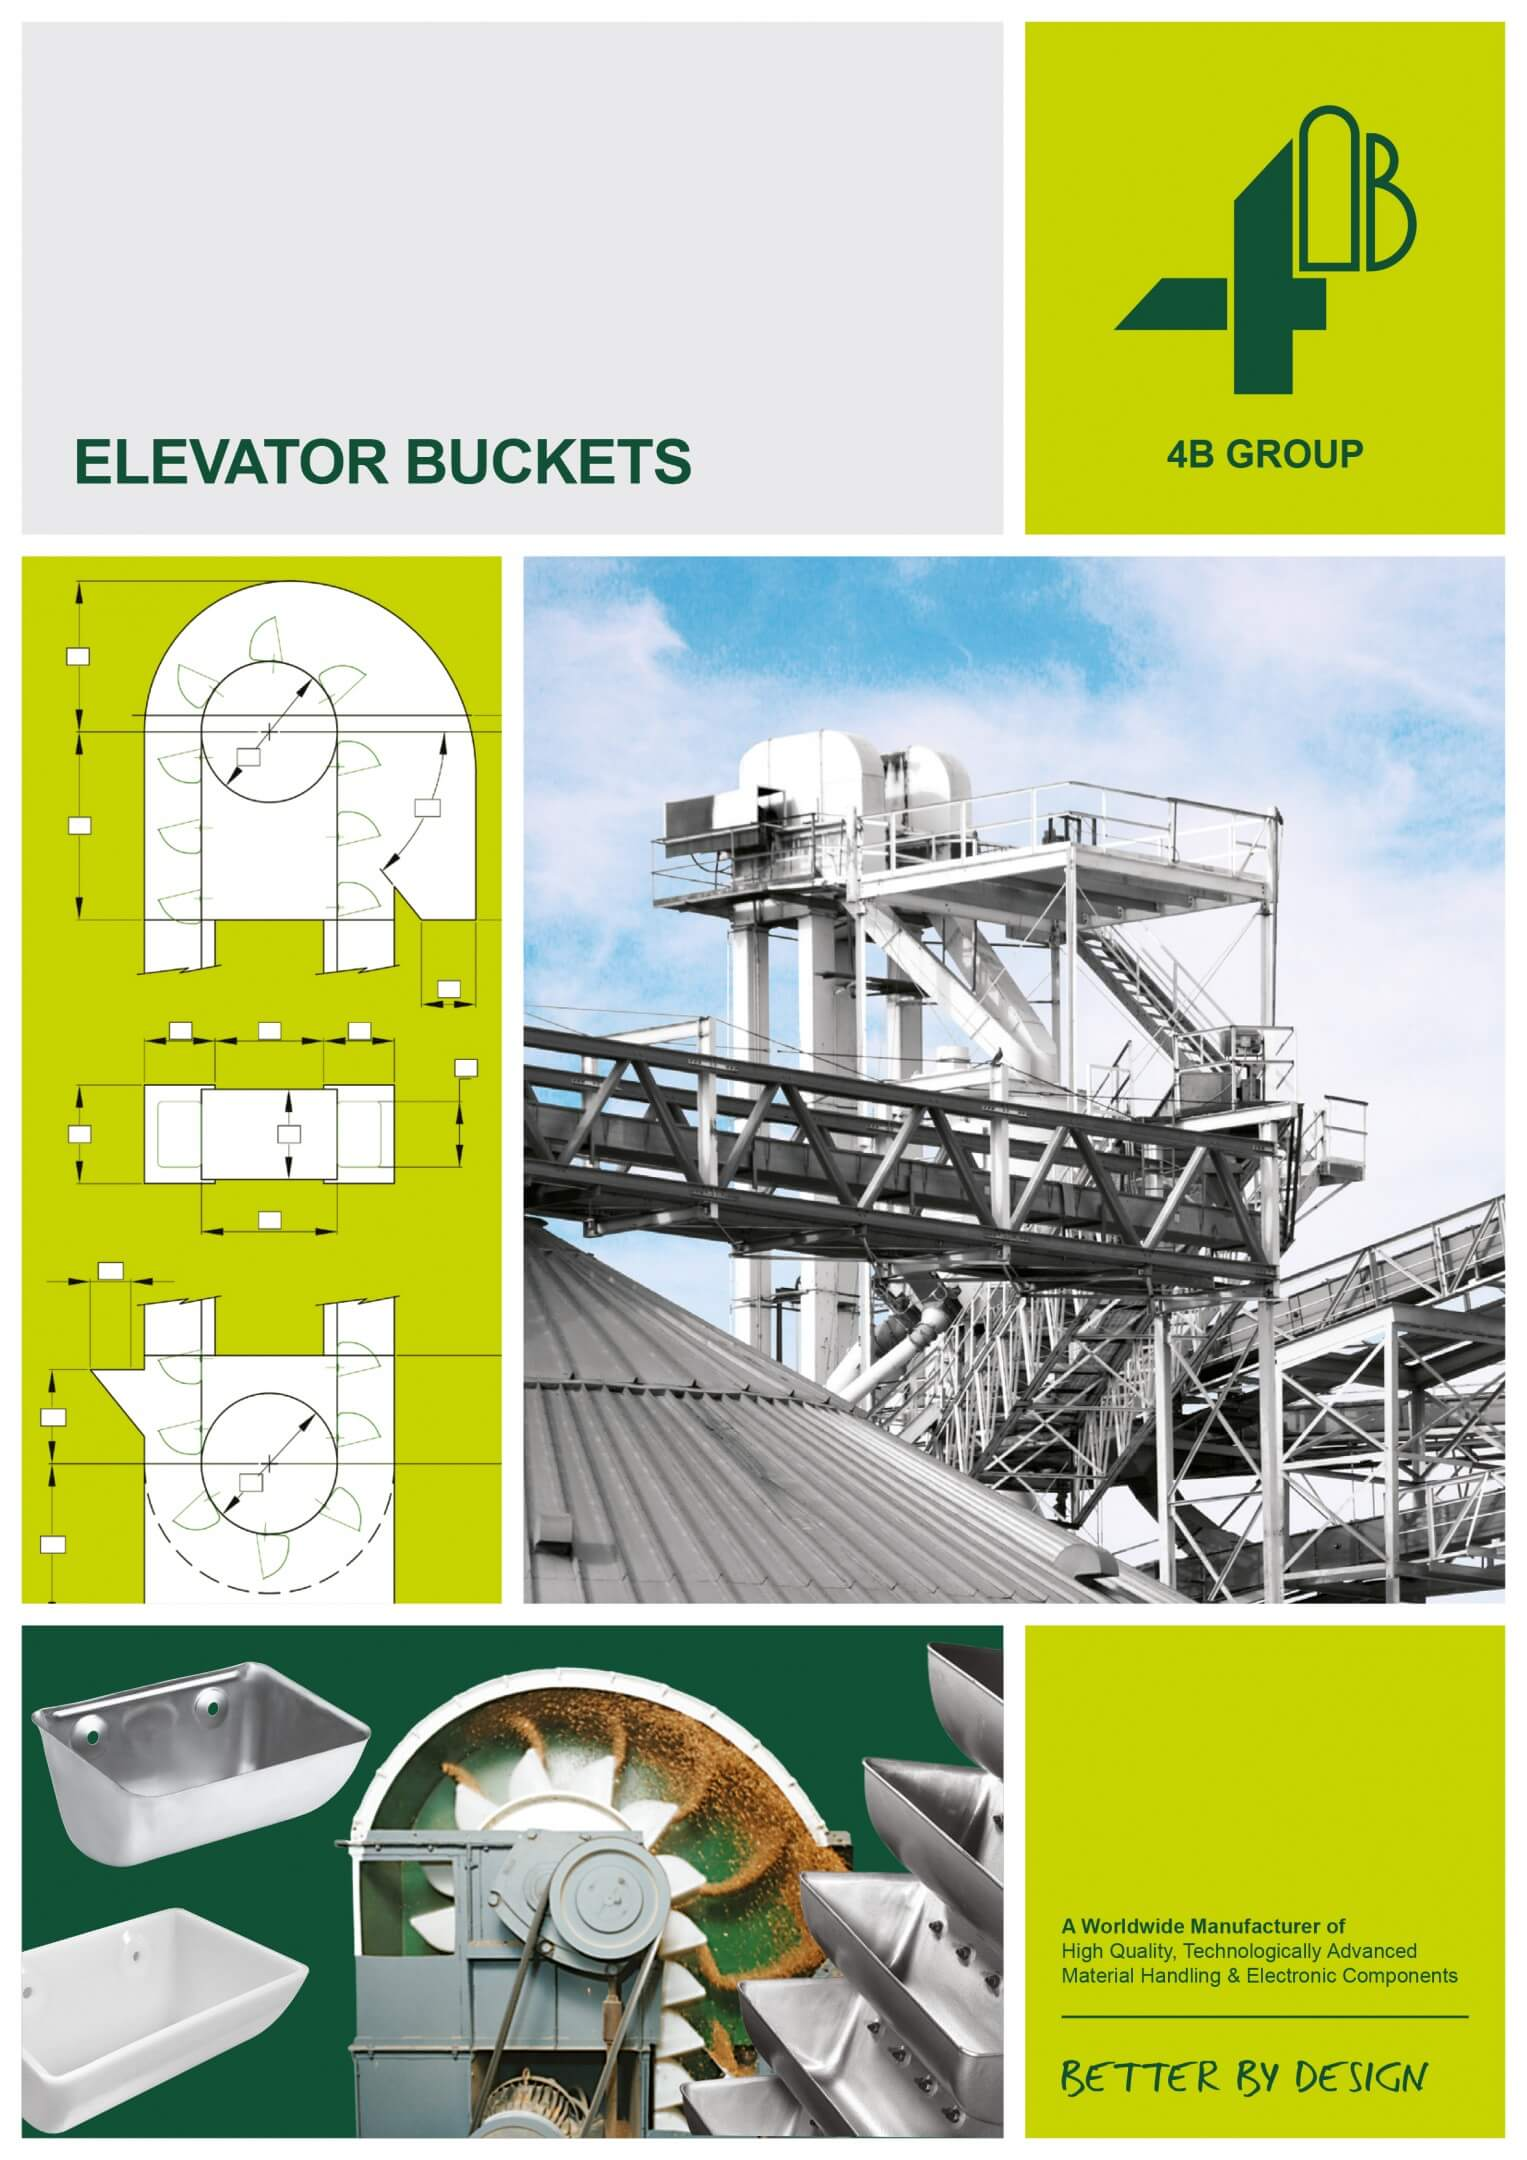 4B elevator buckets catalogue